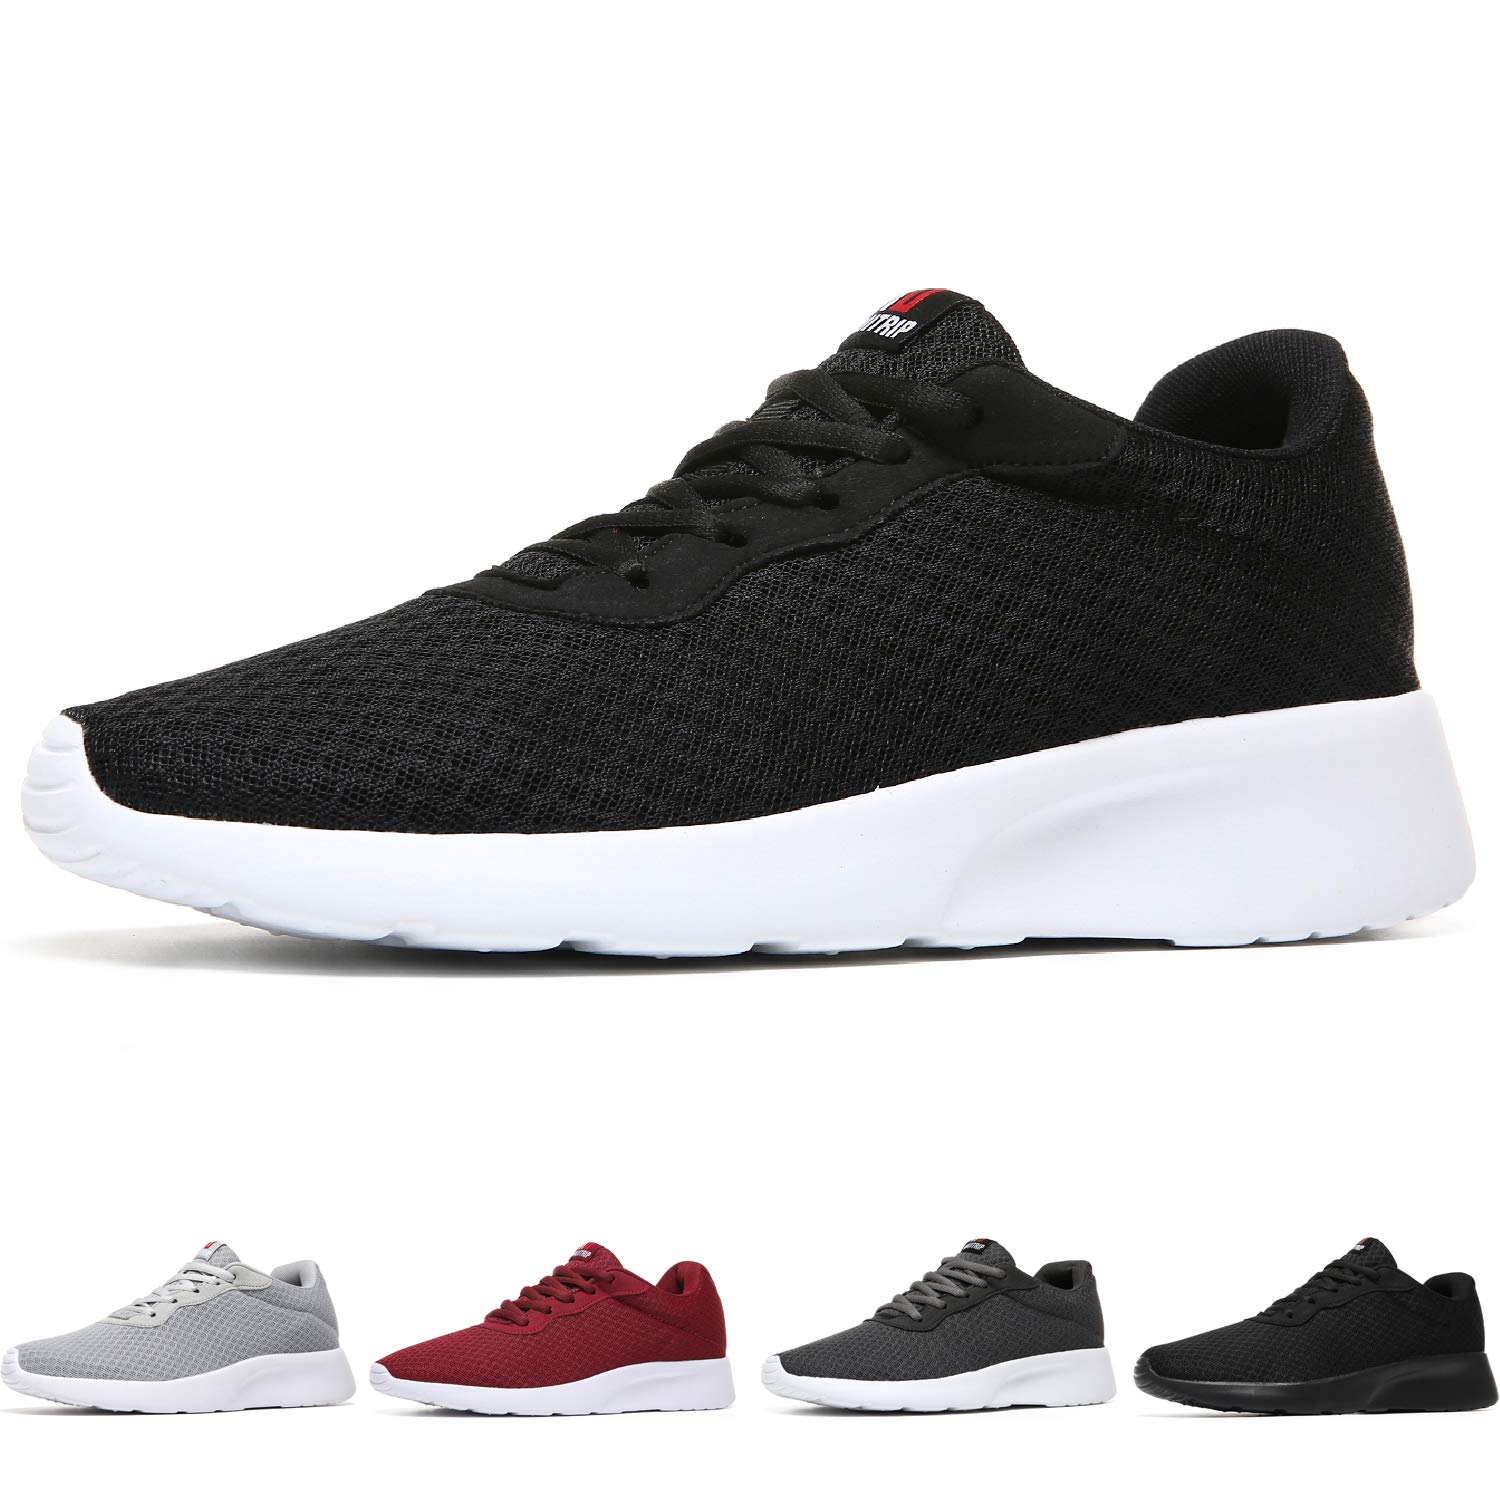 MAIITRIP Men's Running Shoes Sport Athletic Sneakers,Black White,Size 7